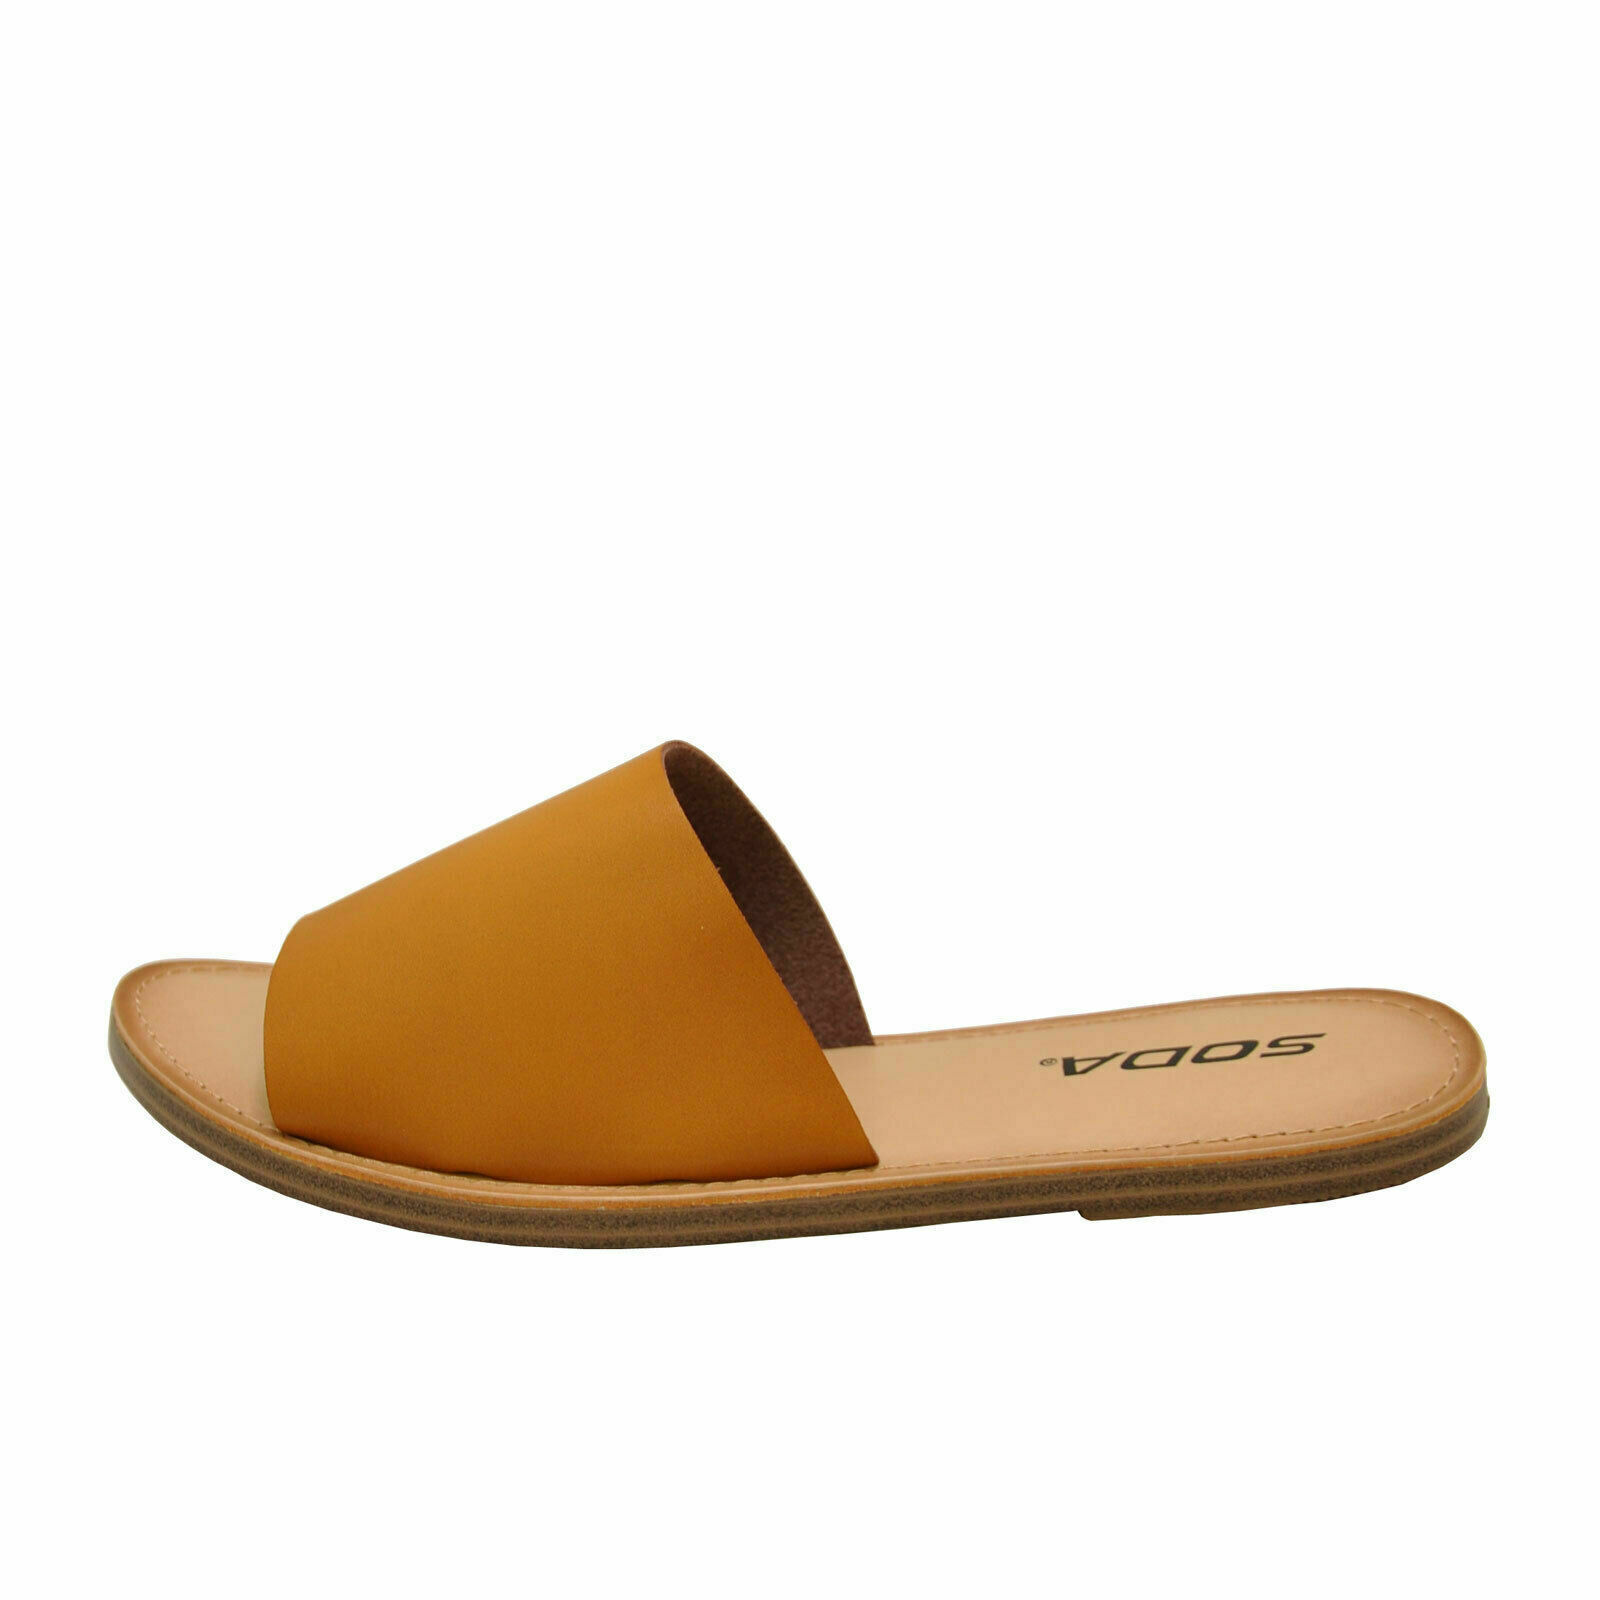 Soda SANSA-S Light Tan Women's Open Toe Slip On Slide Sandals - $24.95 - $31.95